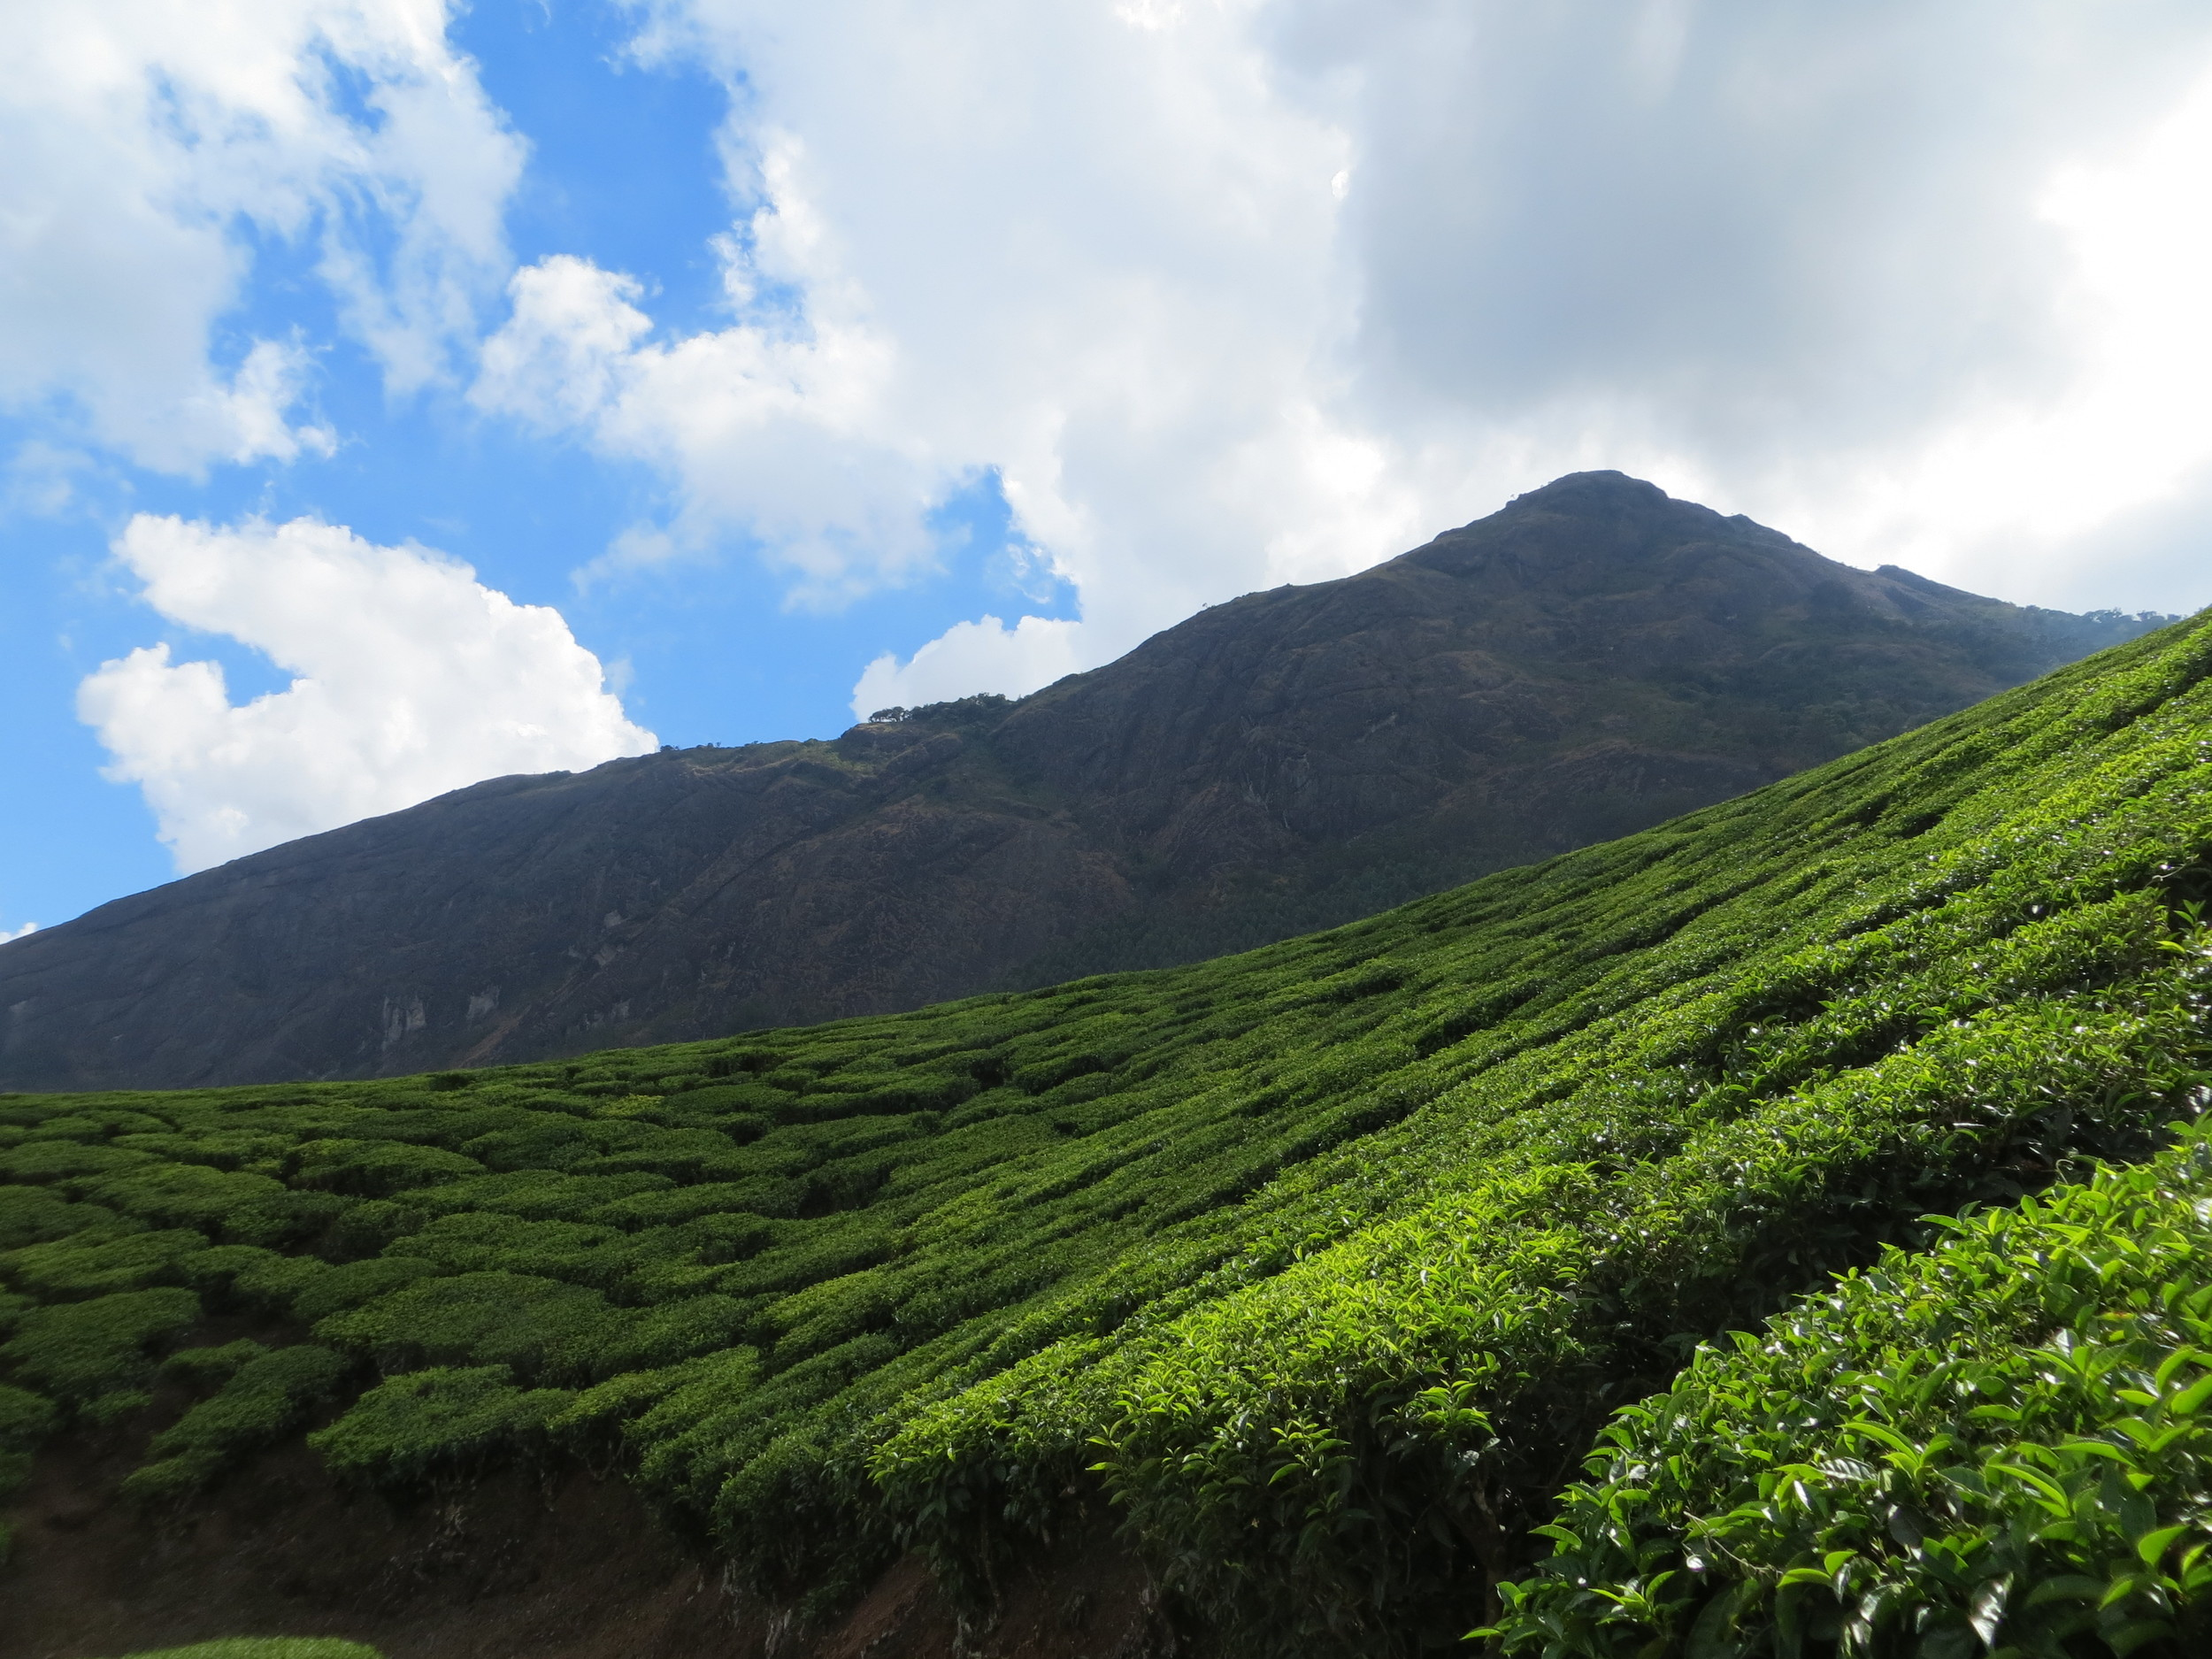 Tata Tea Empire, brilliant green tea fields of Munnar